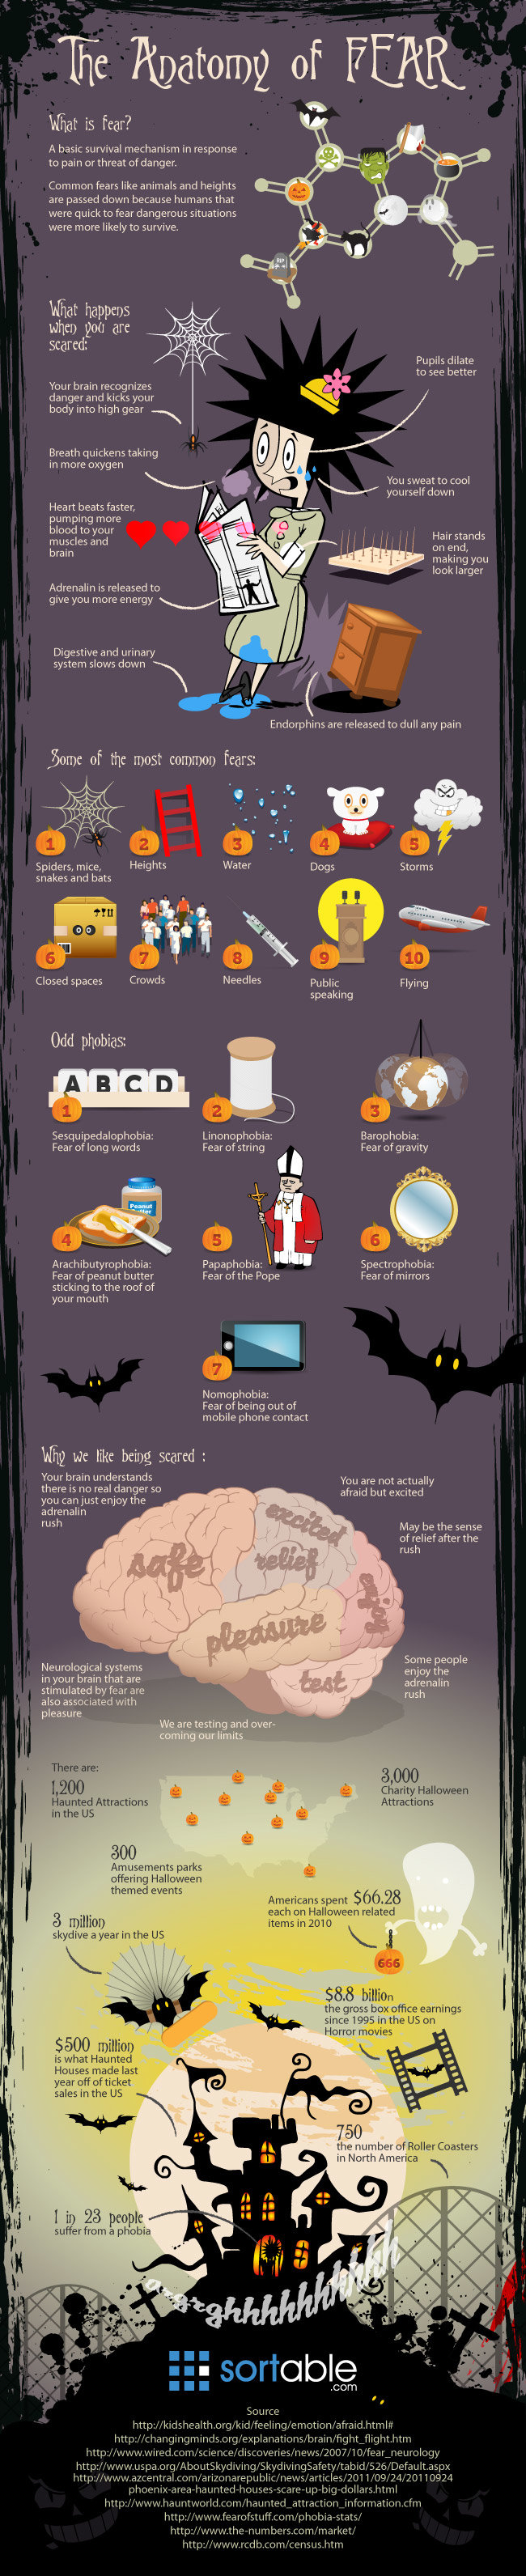 The anatomy of fear #infographic